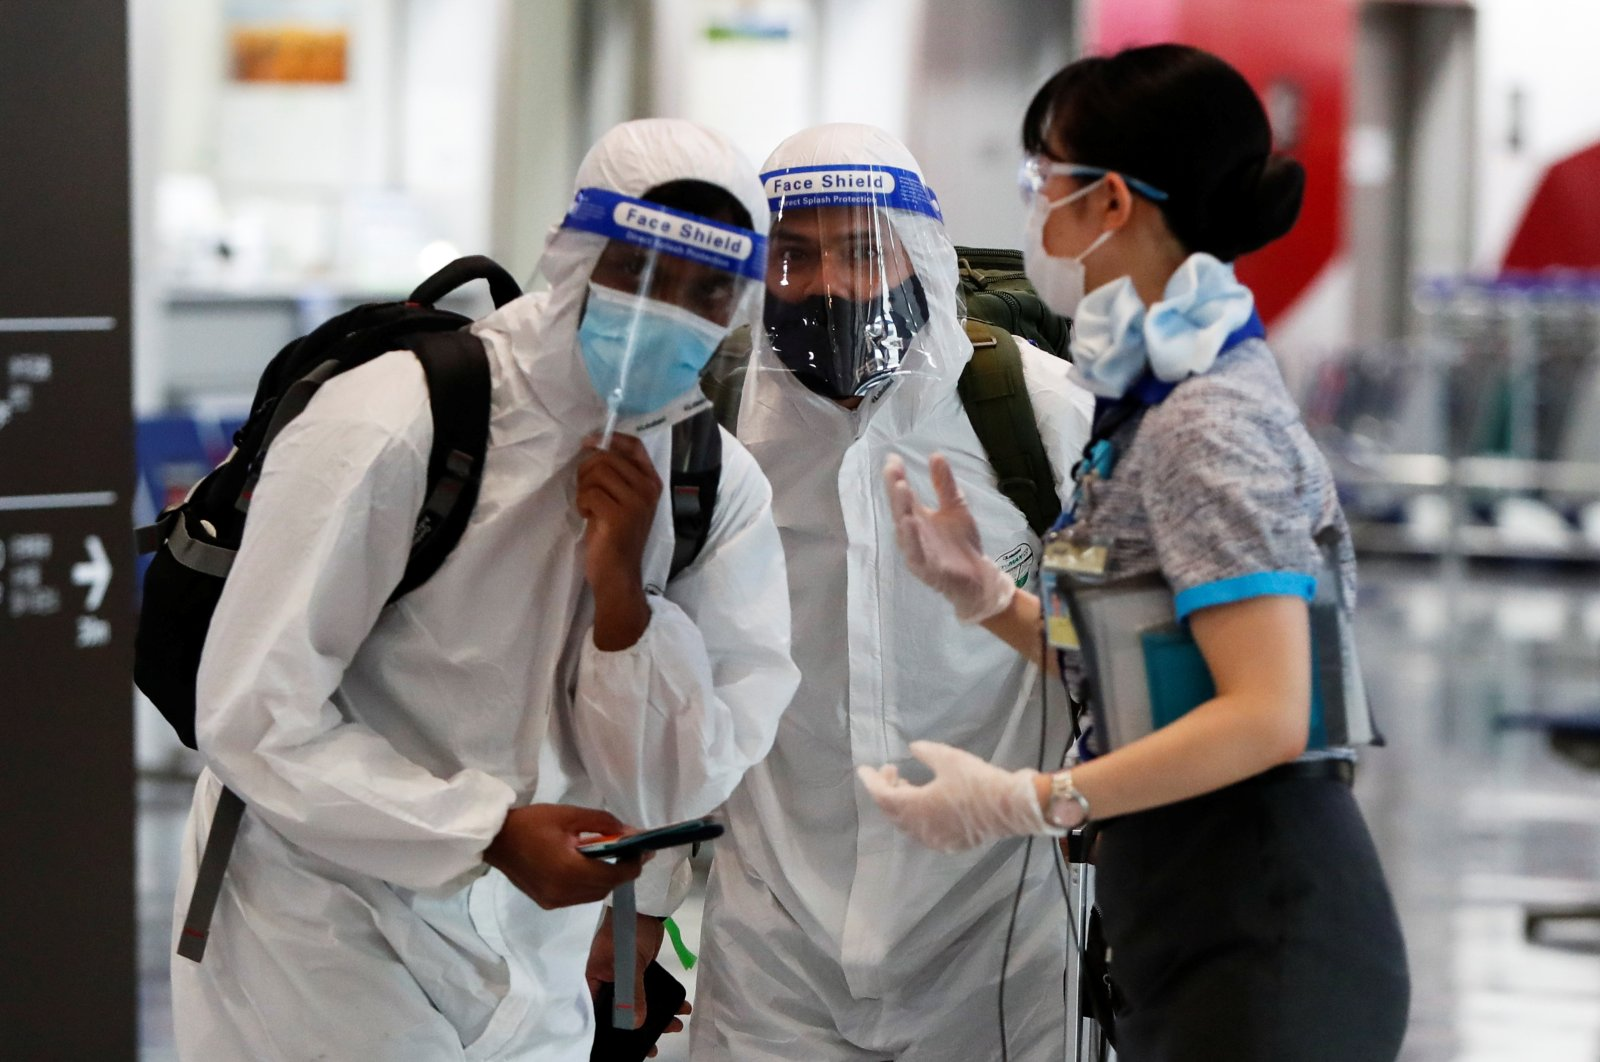 Passengers wearing personal protection equipment (PPE) are escorted by an airline employee at Narita international airport, amid the coronavirus pandemic, Narita, Tokyo, Japan, June 1, 2021.  (Reuters Photo)